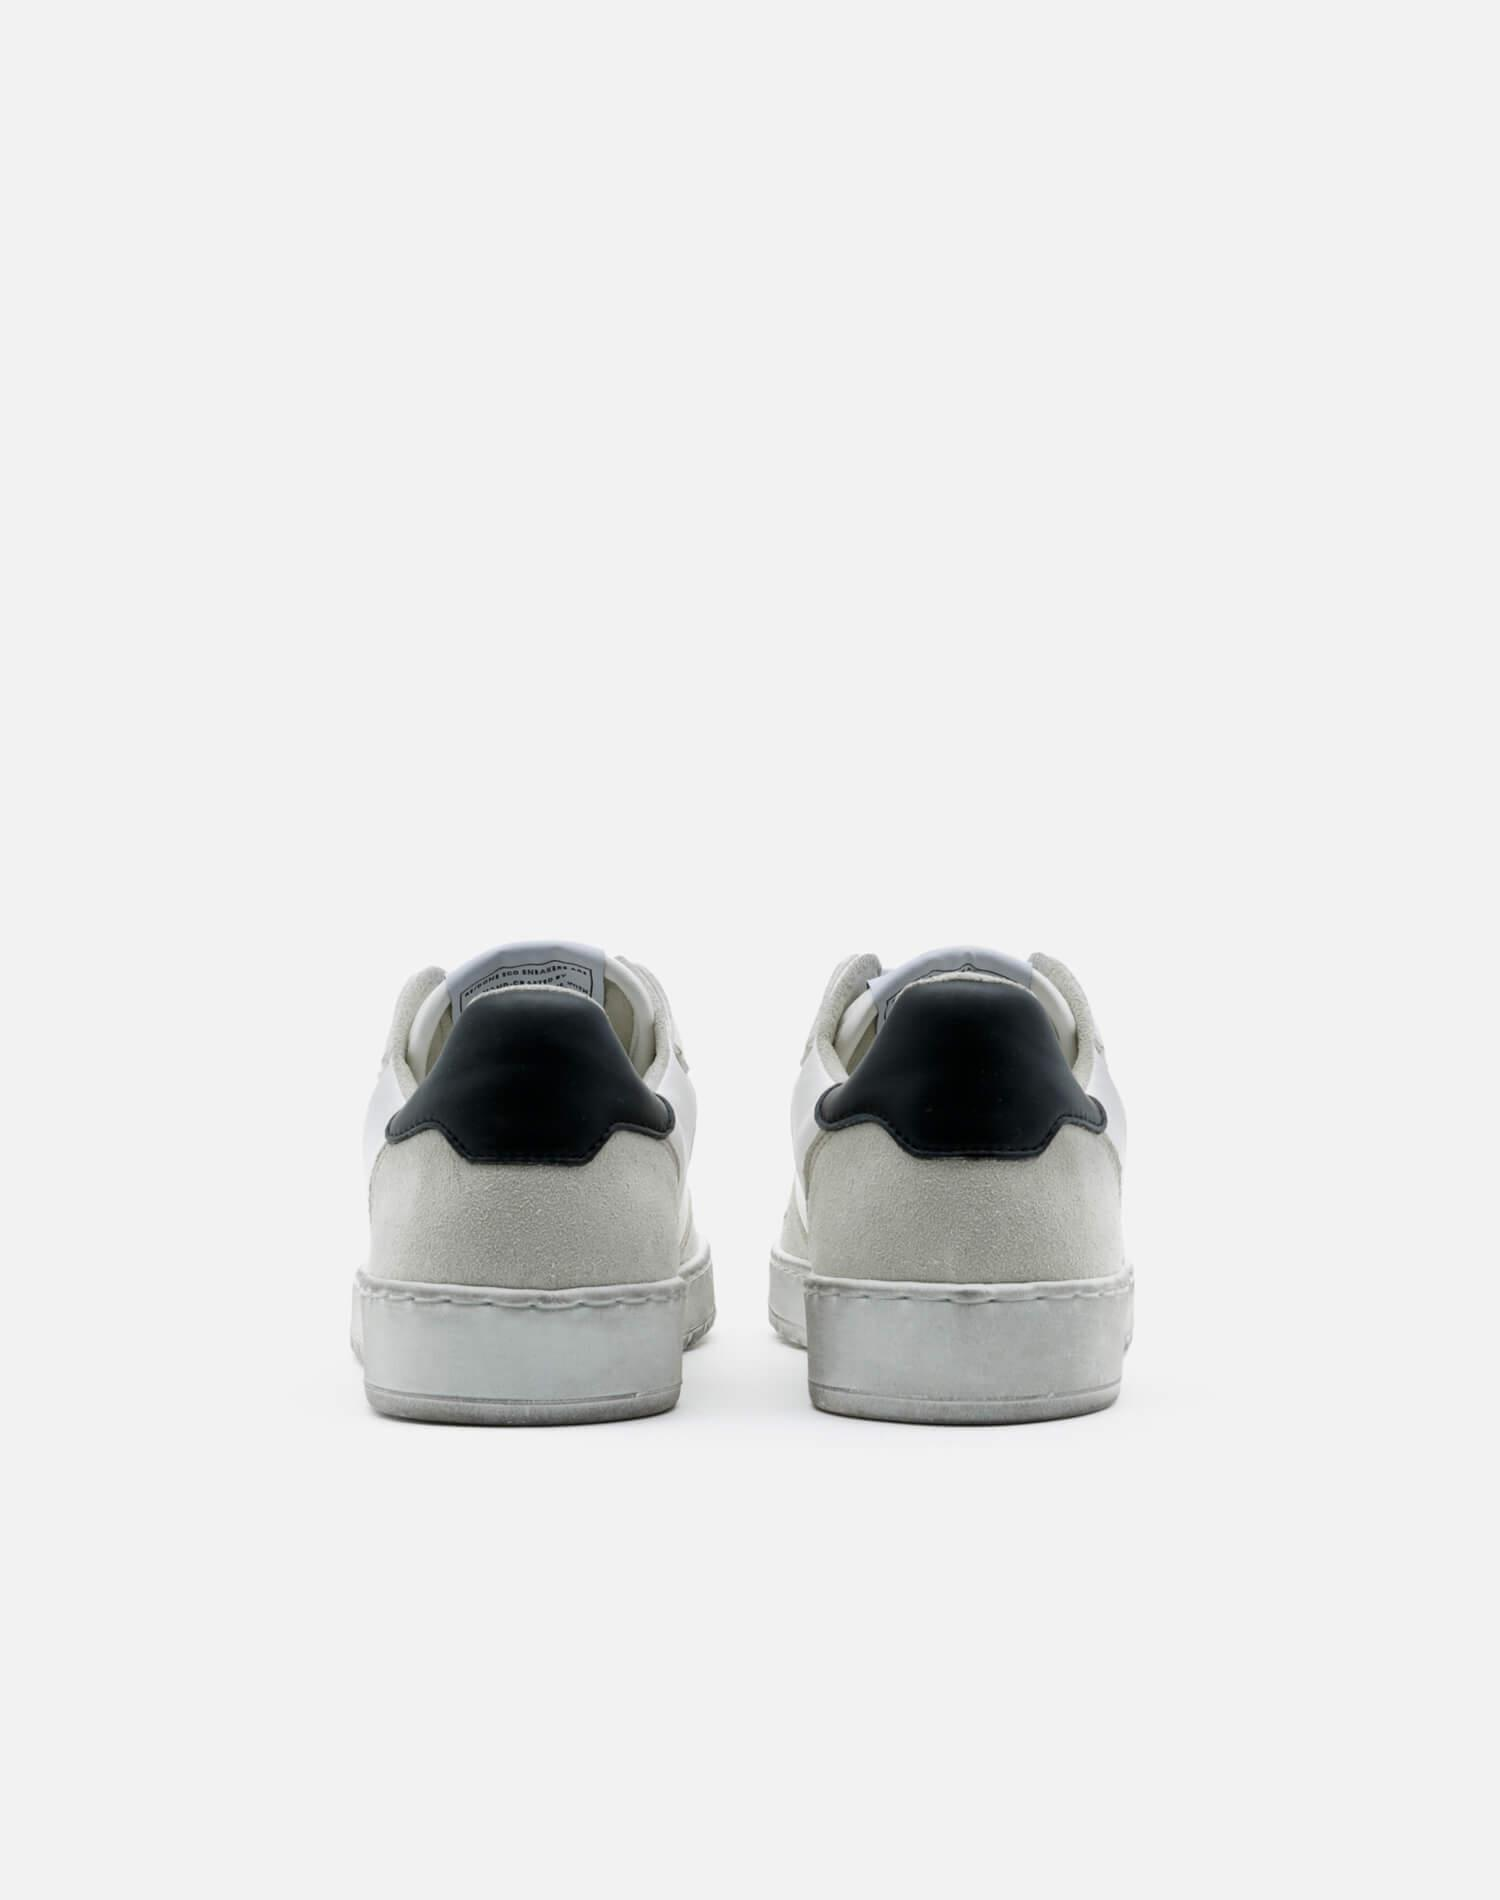 80s Sustainable Basketball Shoe - White and Black 3